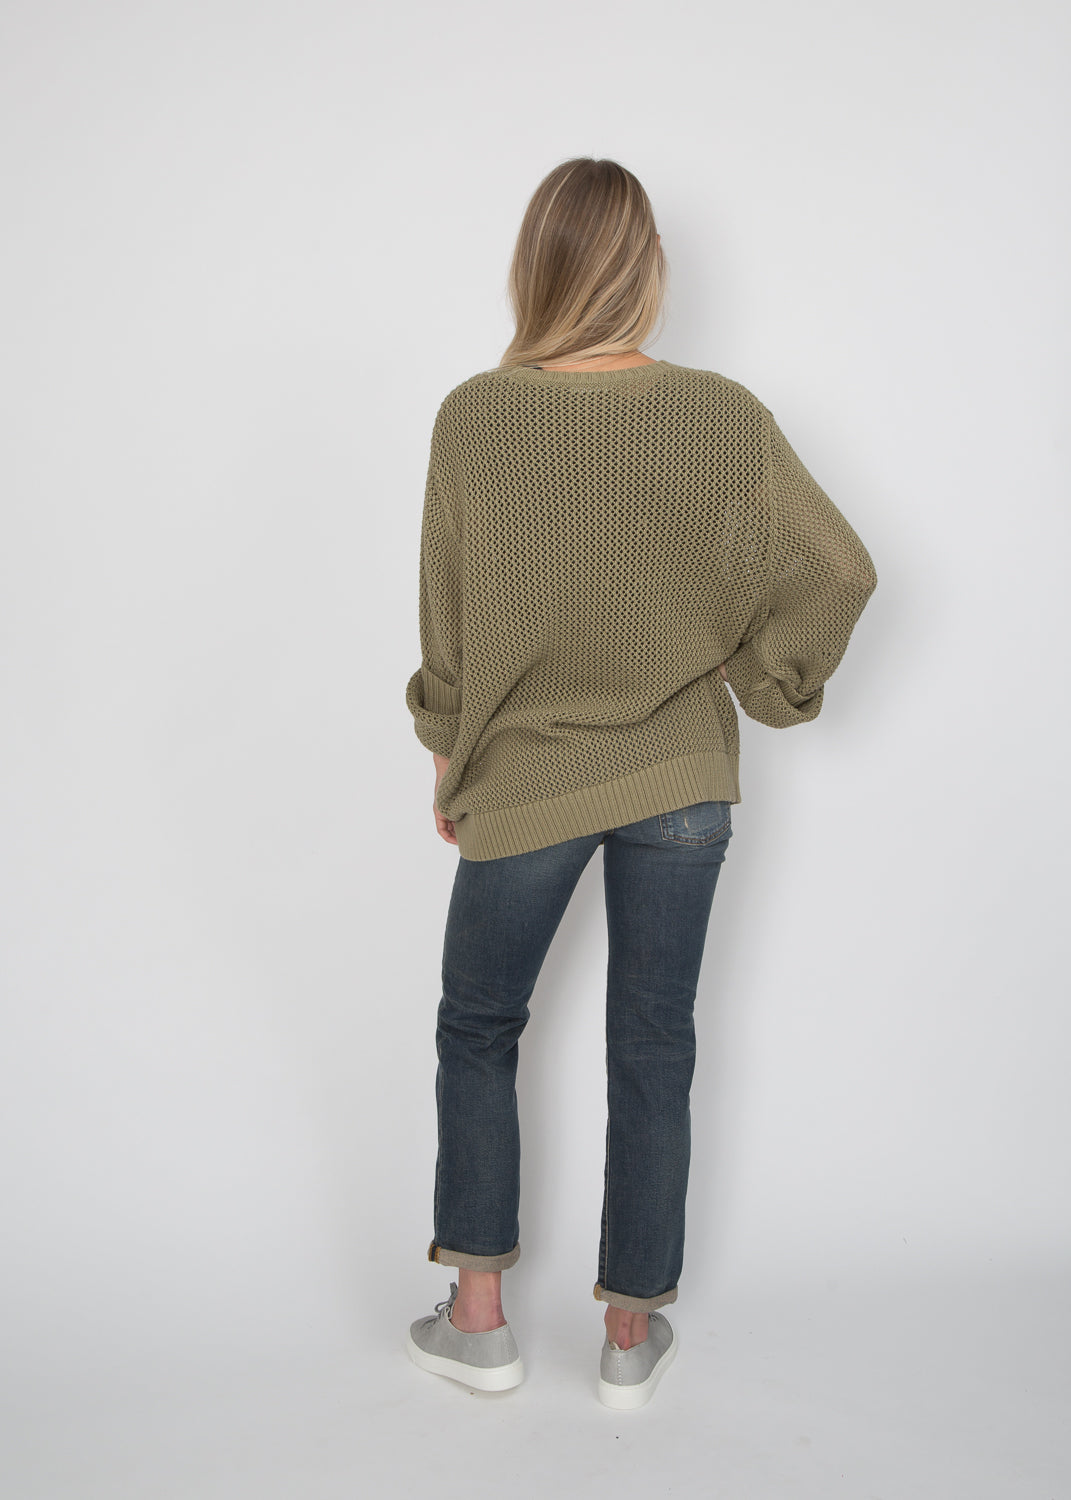 6397 Cotton Knit Crewneck Sweater